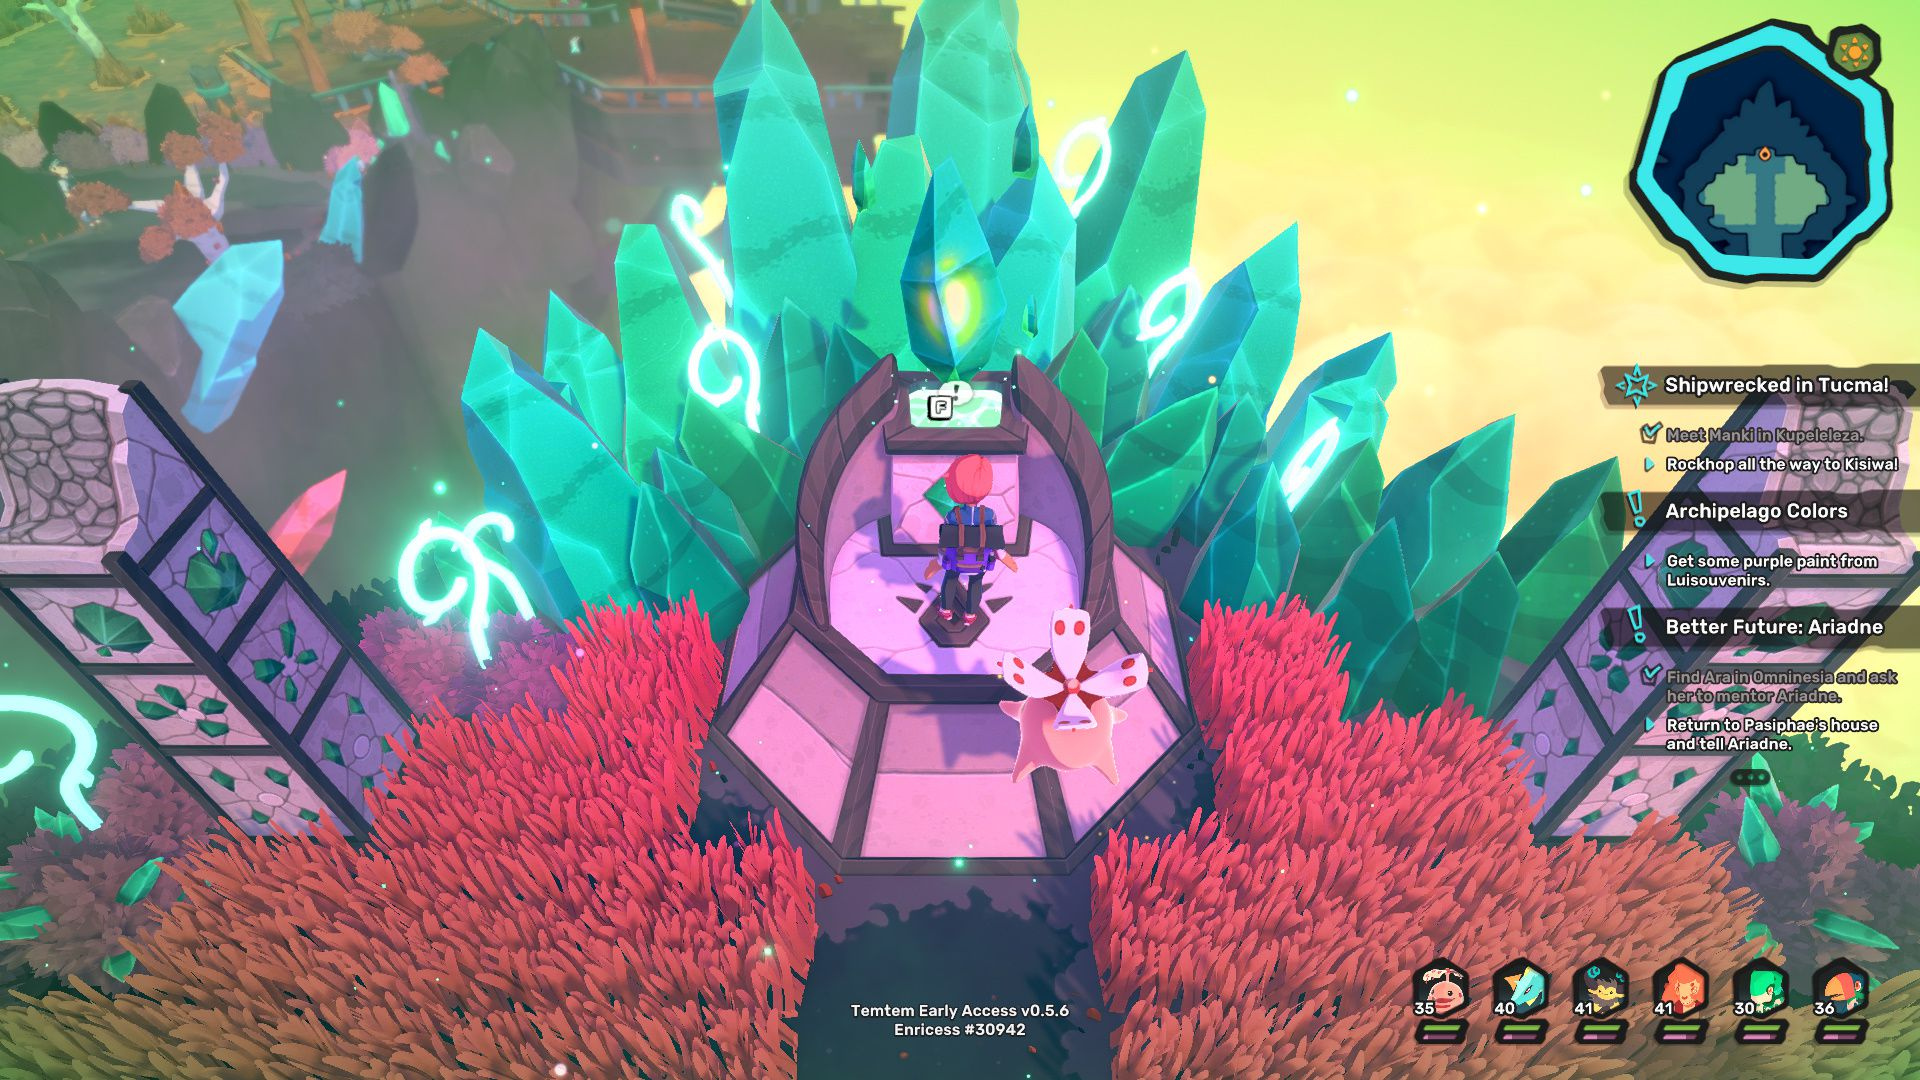 Image showing how to evolve Tuwai into Tuvine at Place of Power in Temtem.